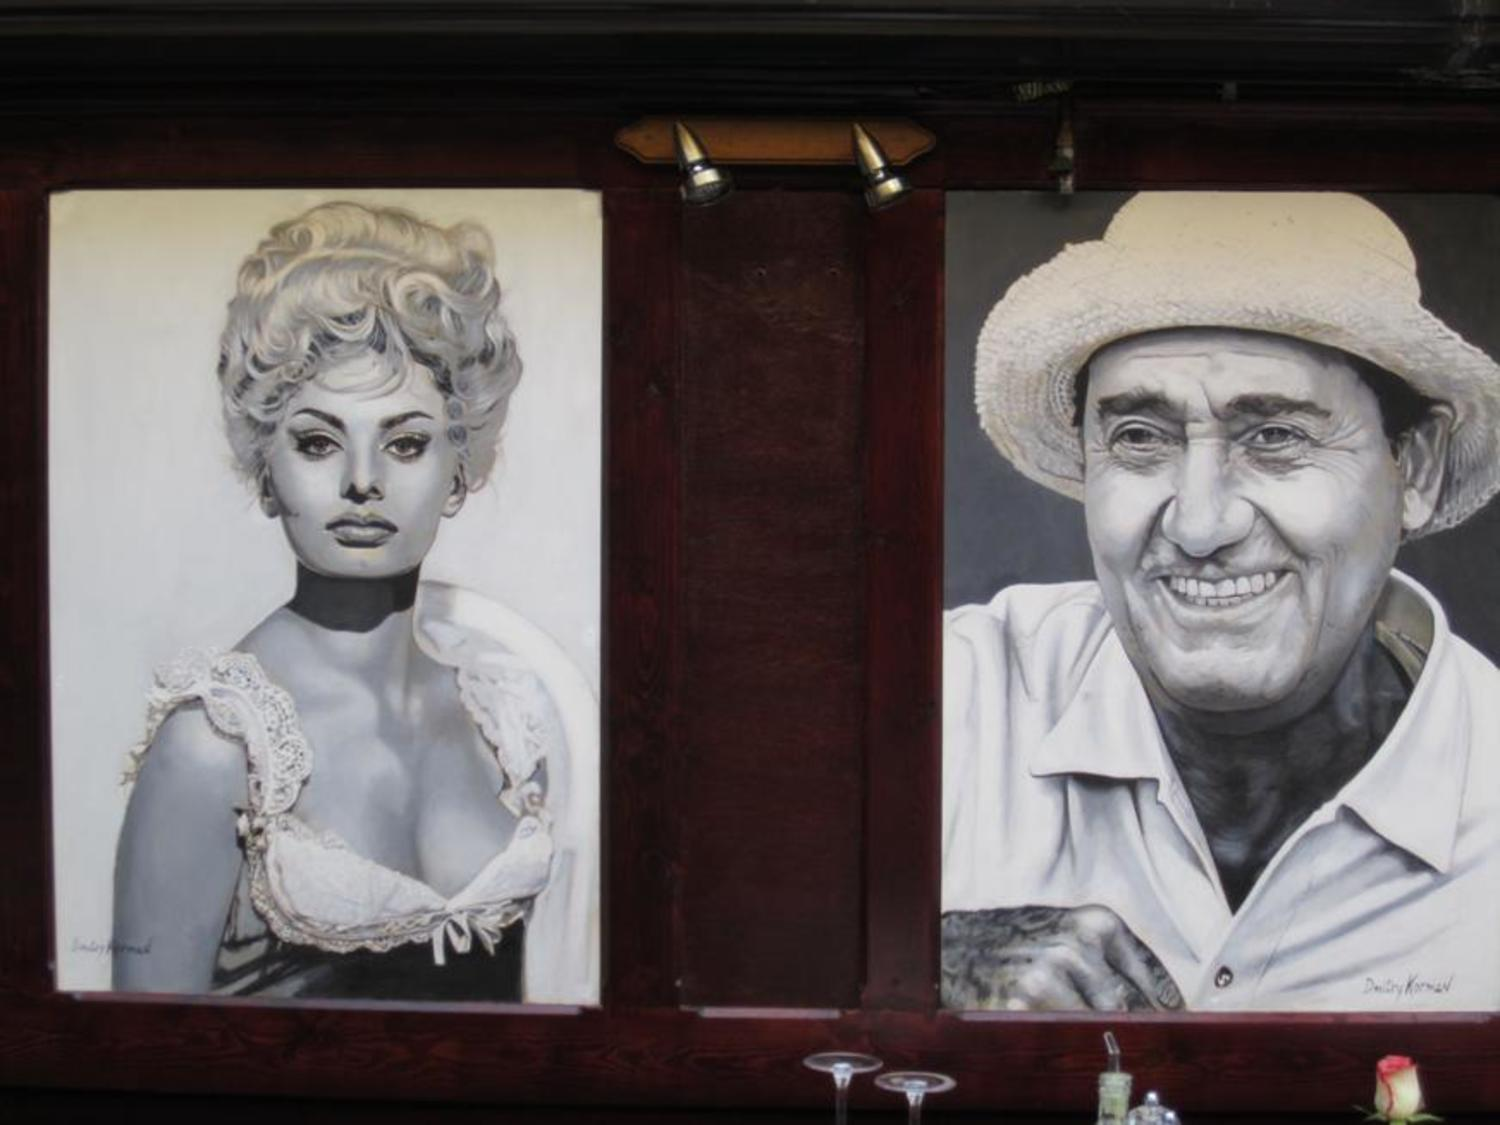 Sophia Loren and Alberto Sordi, murals in the restaurant I Famosi, Antwerp, Belgium